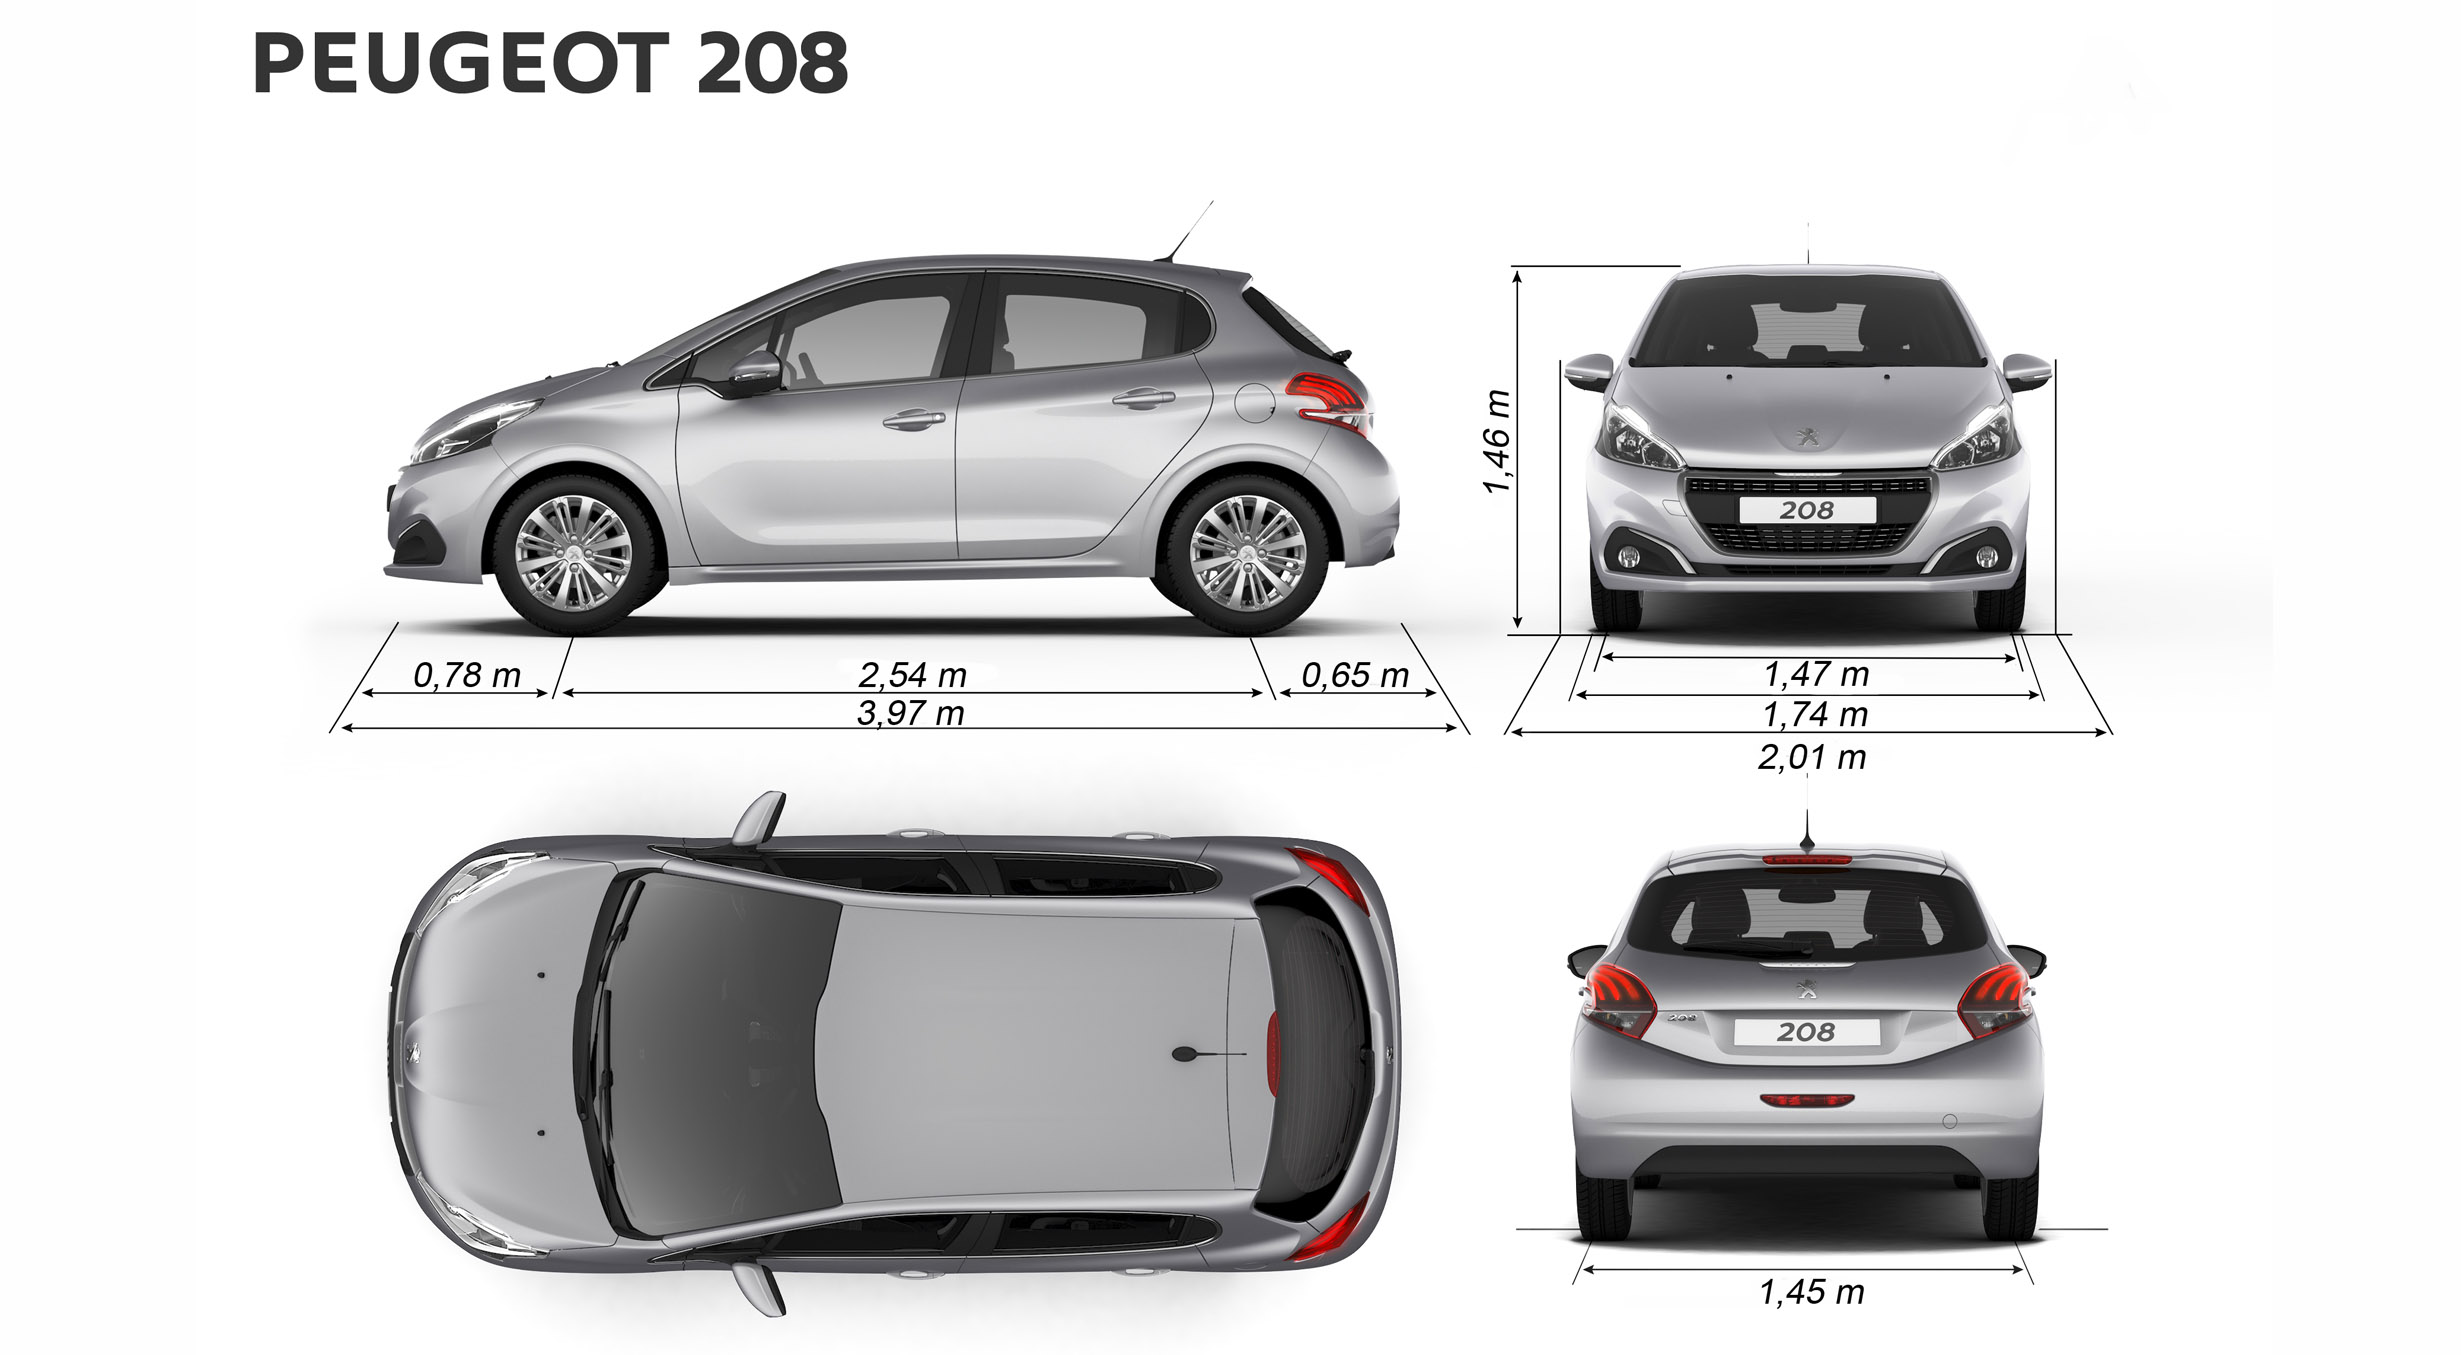 Quelle peugeot 208 restyl e choisir for Quelle camera ip choisir